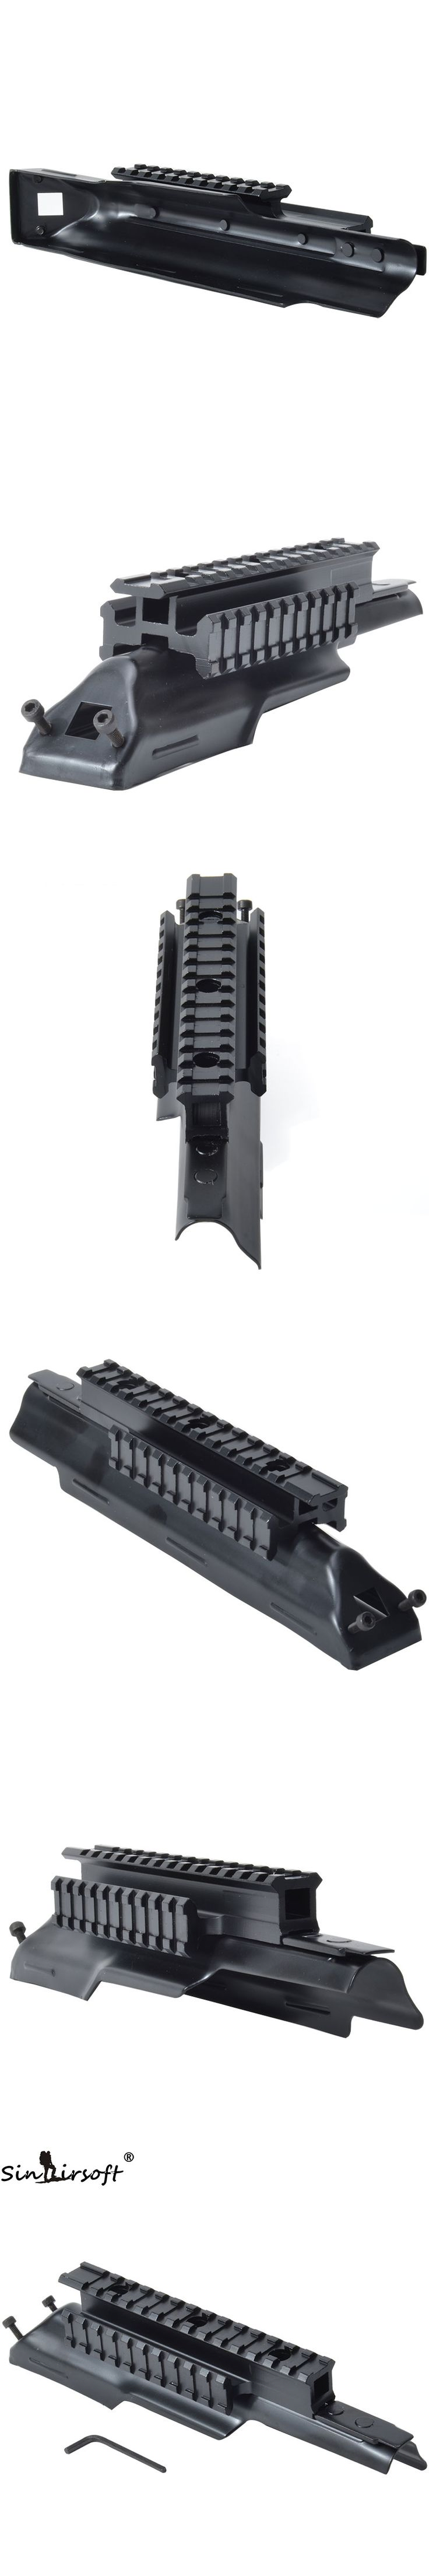 Tactical AK Receiver Triple 20mm Picatinny & Weaver Rail Top Scope Mount System Cover Fit 47 & 74